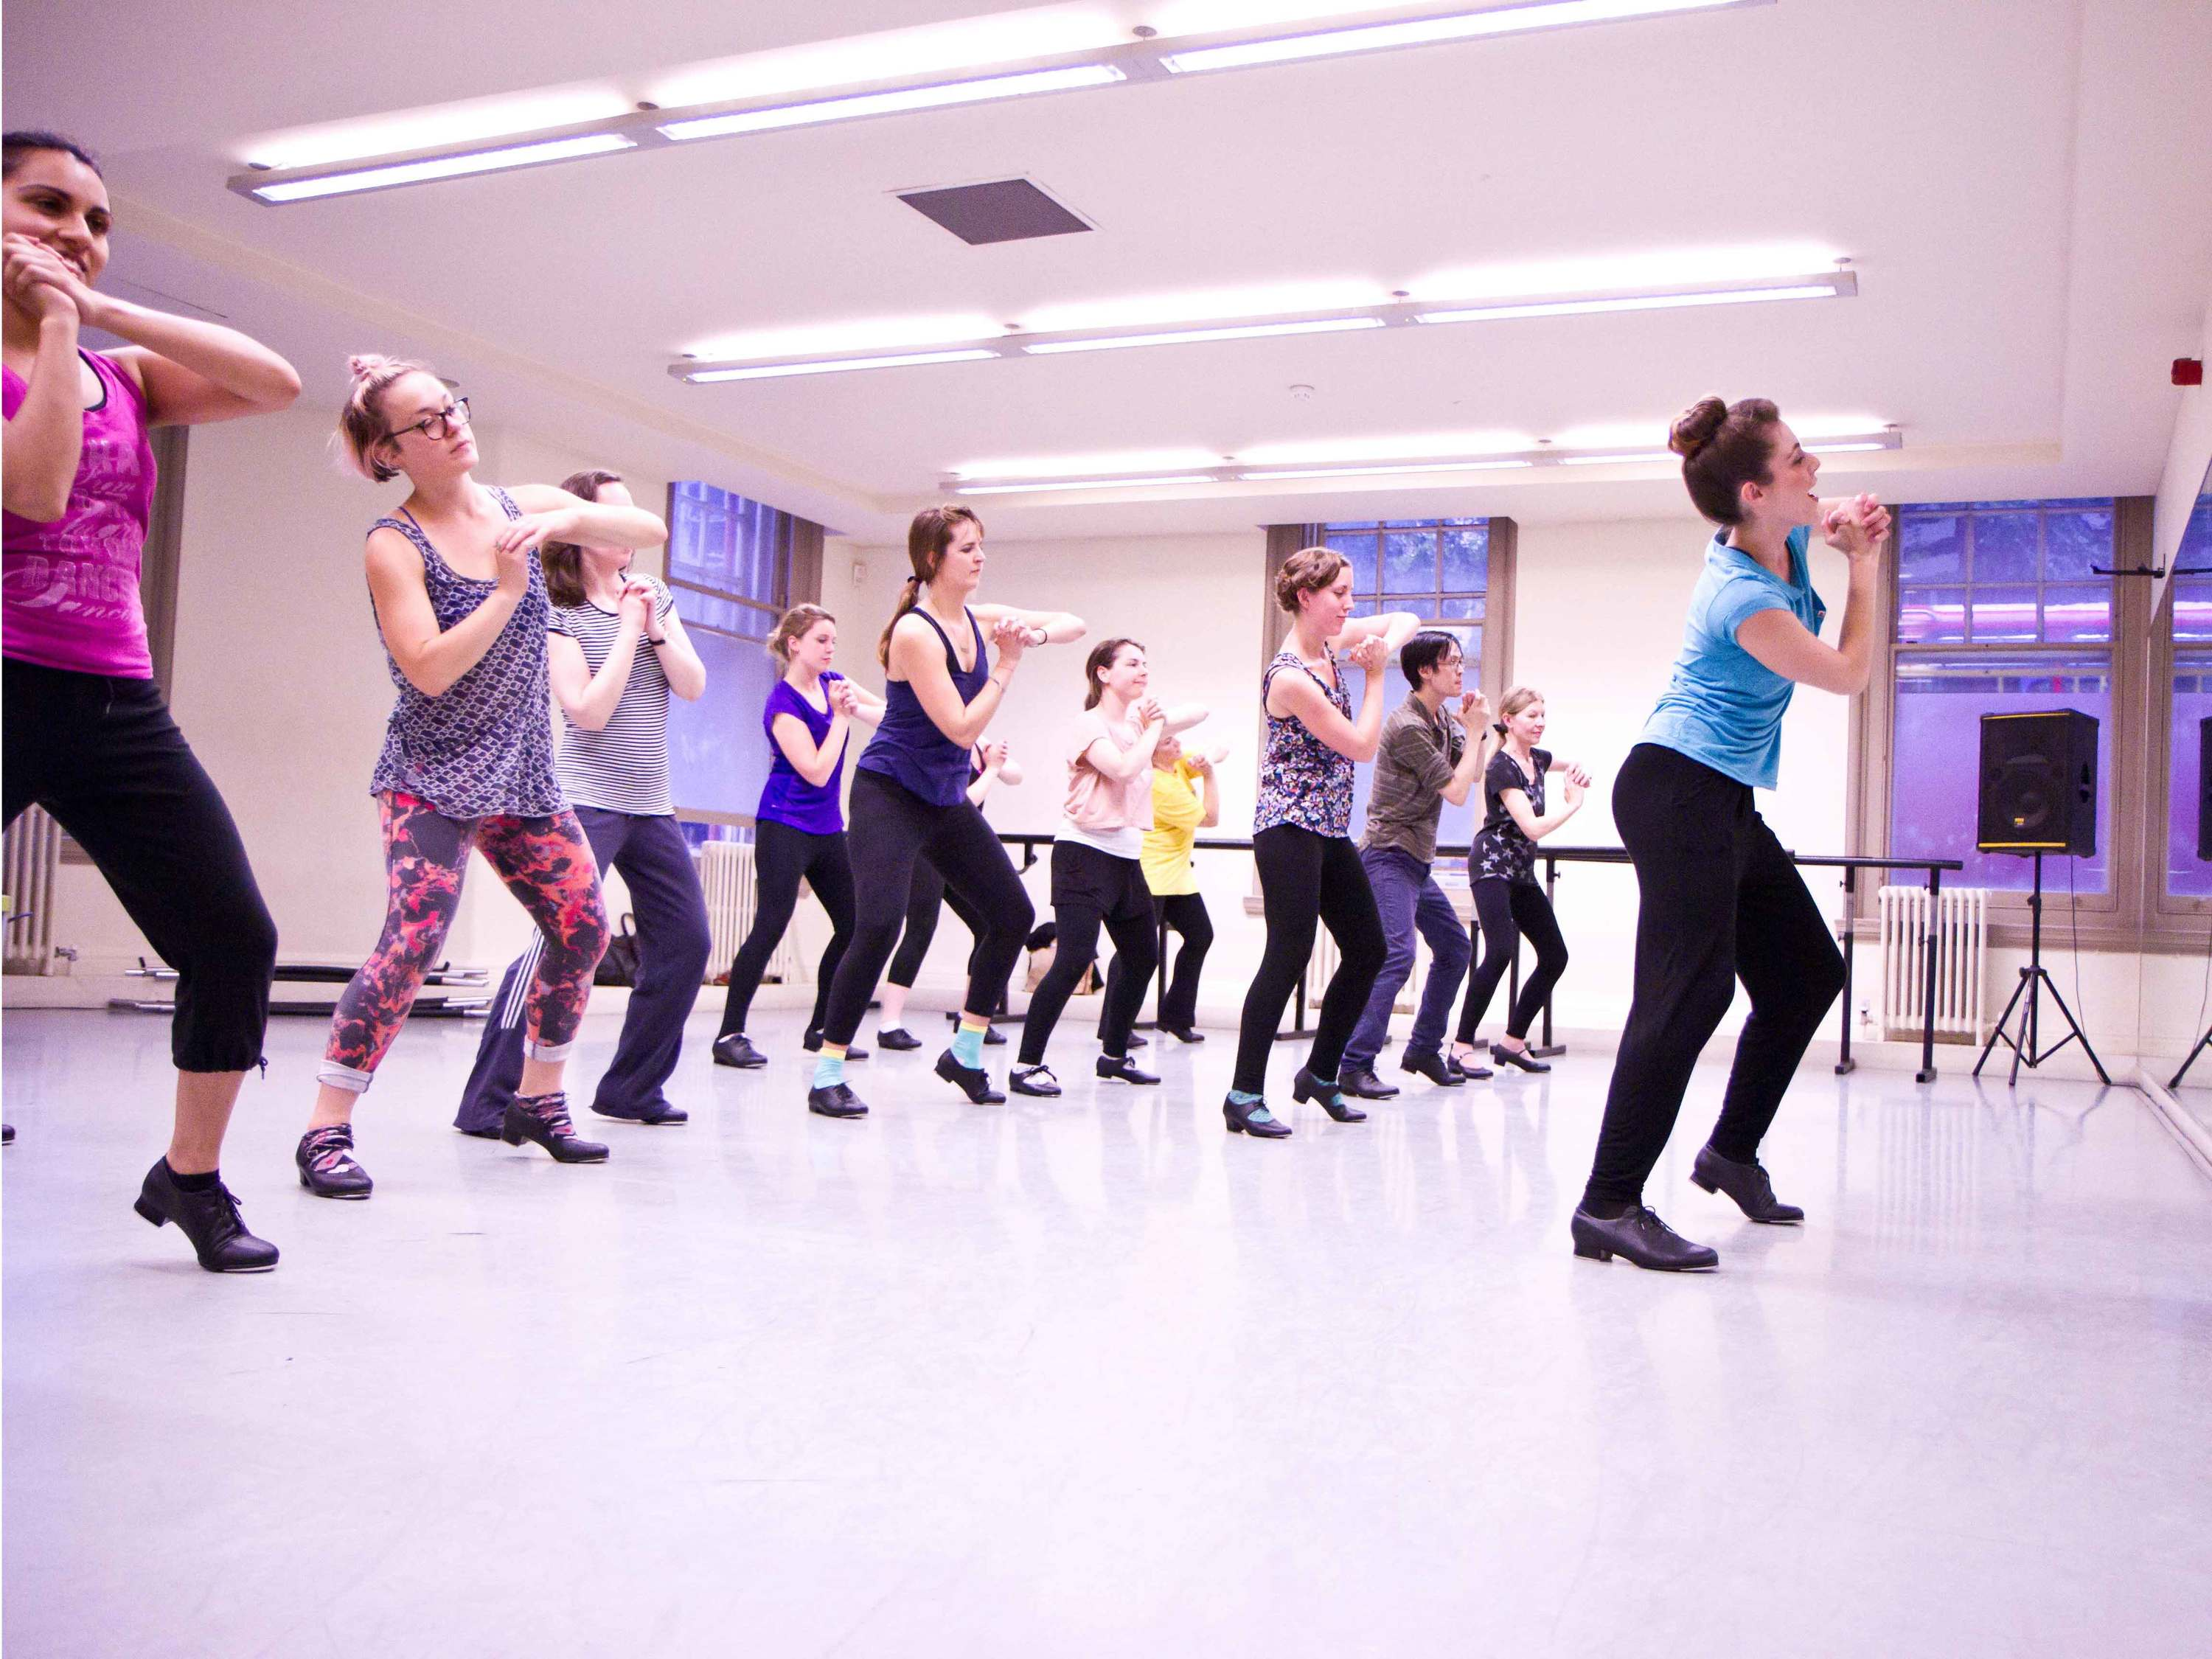 The best dance classes in London, tap dance at city academy